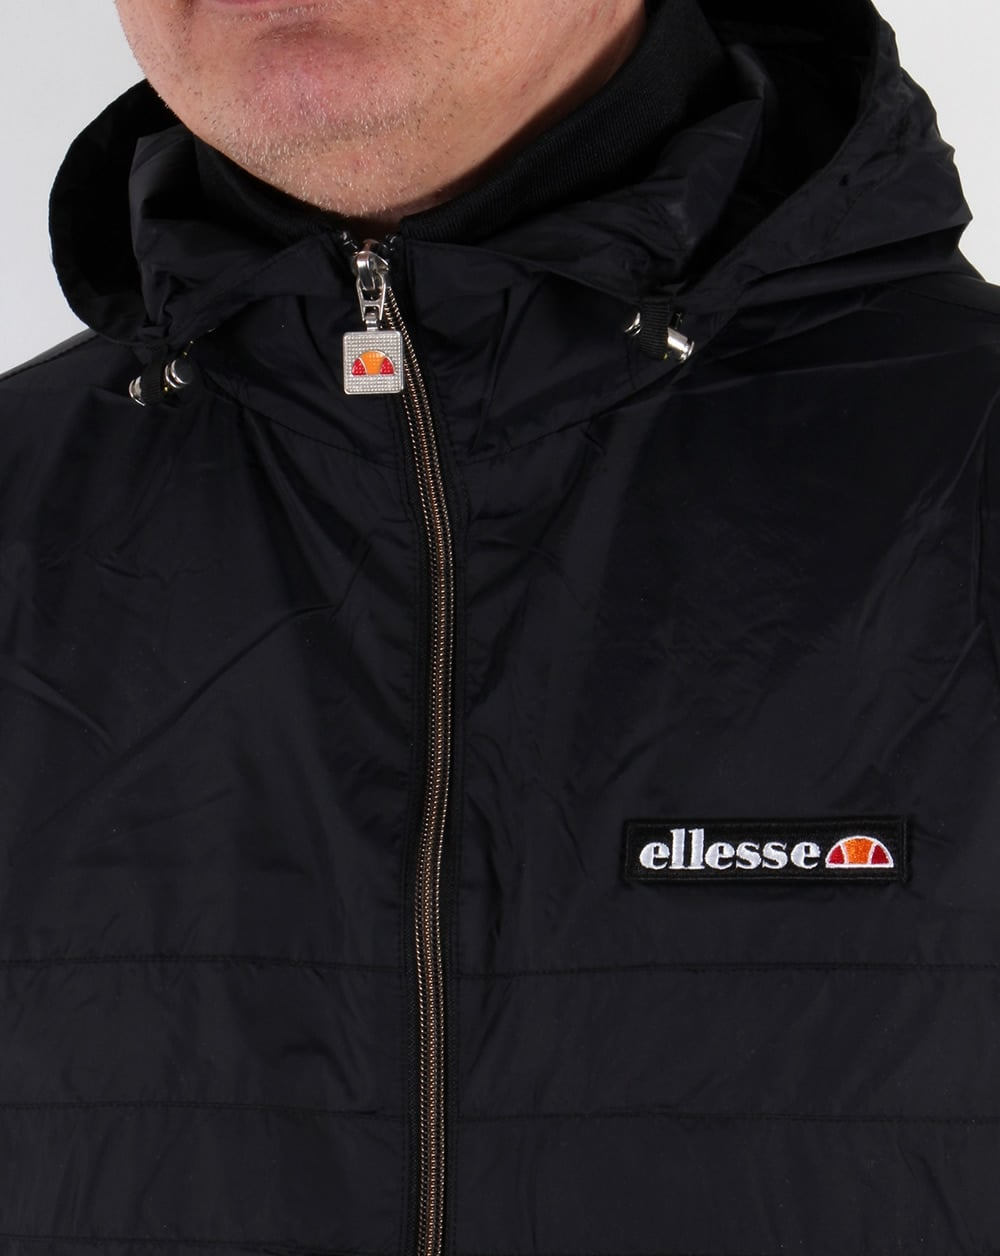 8e68d412 Ellesse Valva Lightweight Jacket Black